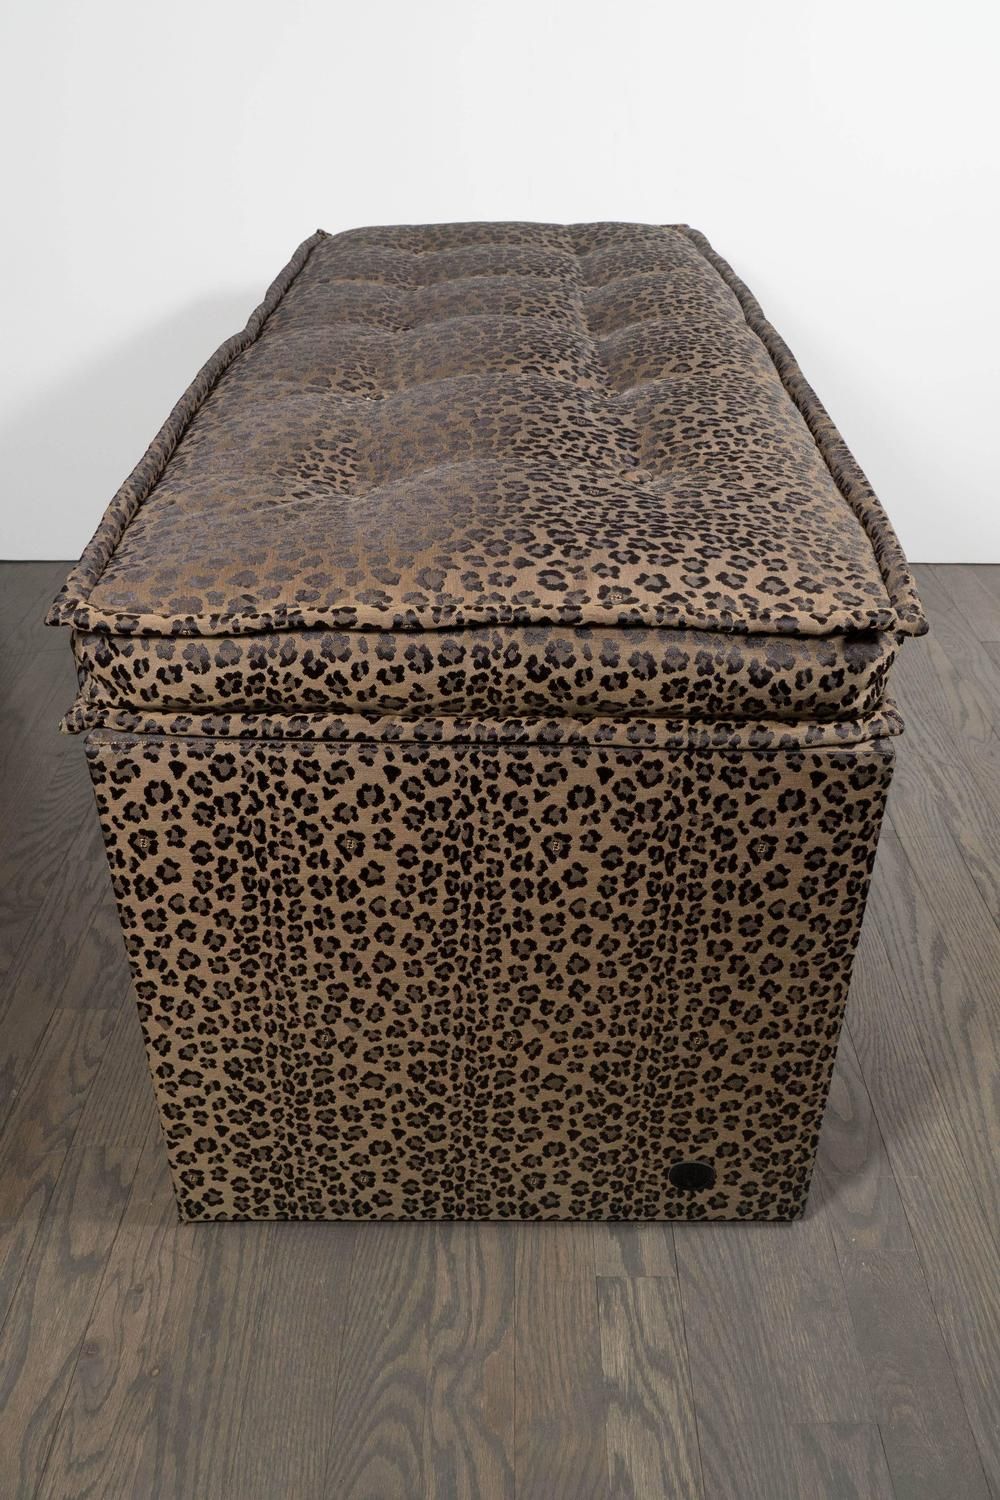 Ultra Chic Fendi Casa Bench With Original Fendi Leopard Upholstery For Sale At 1stdibs